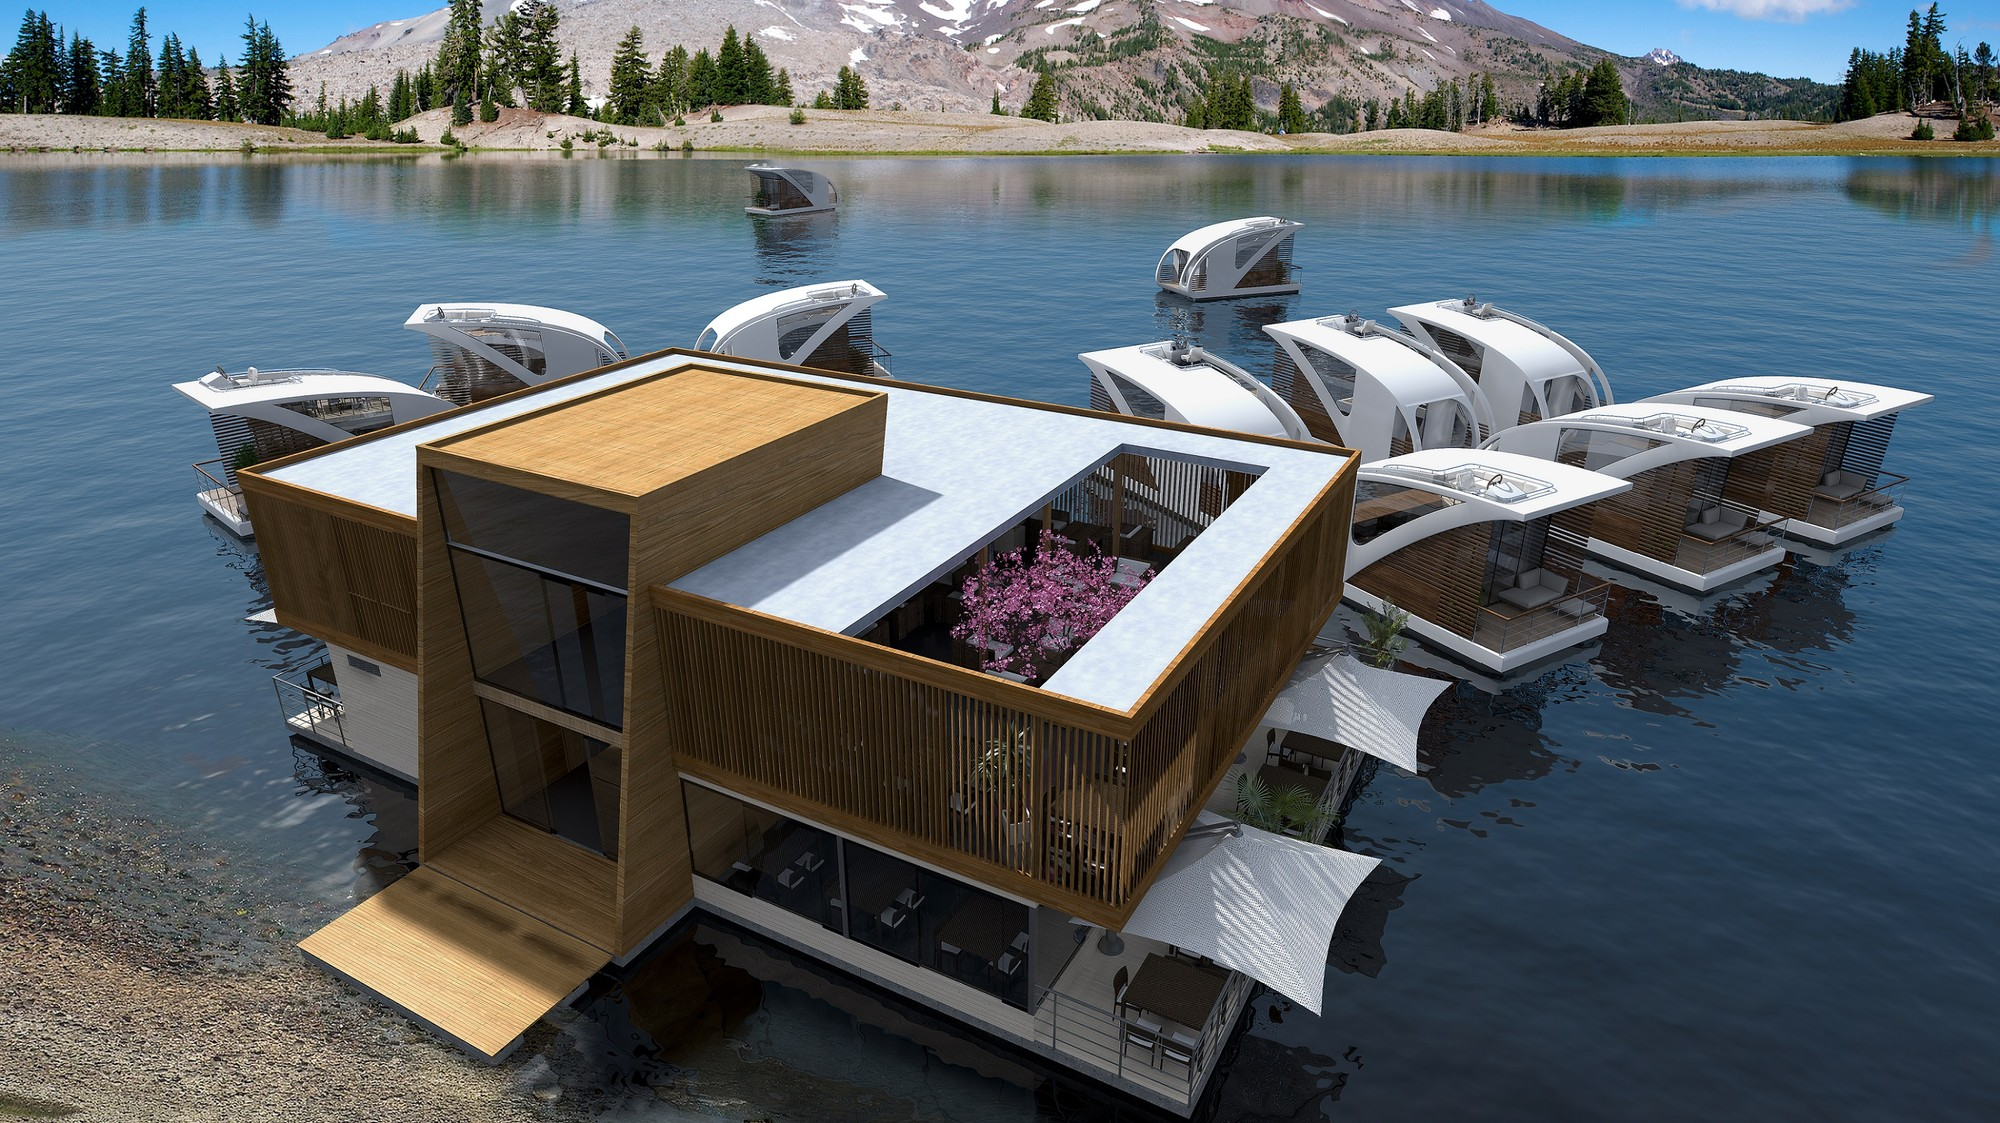 Salt & Water Design Floating Hotel with Catamaran-Apartments, Floating Hotel with Catamaran Apartments. Image Courtesy of Salt & Water Design Studio